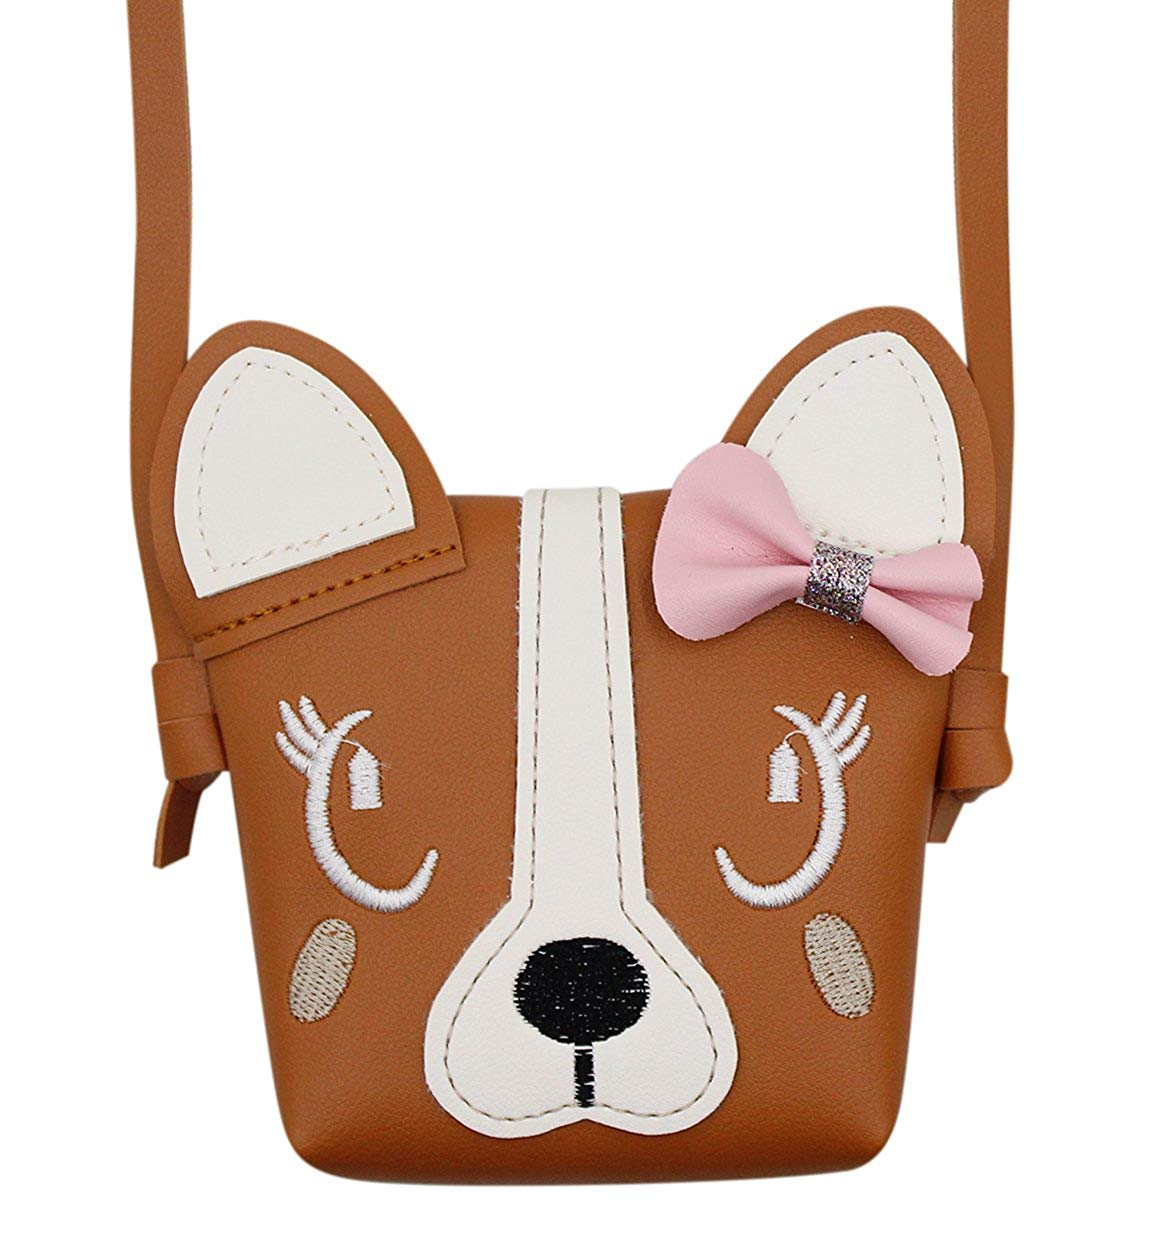 5239d67b35ef Cheap Cute Crossbody, find Cute Crossbody deals on line at Alibaba.com